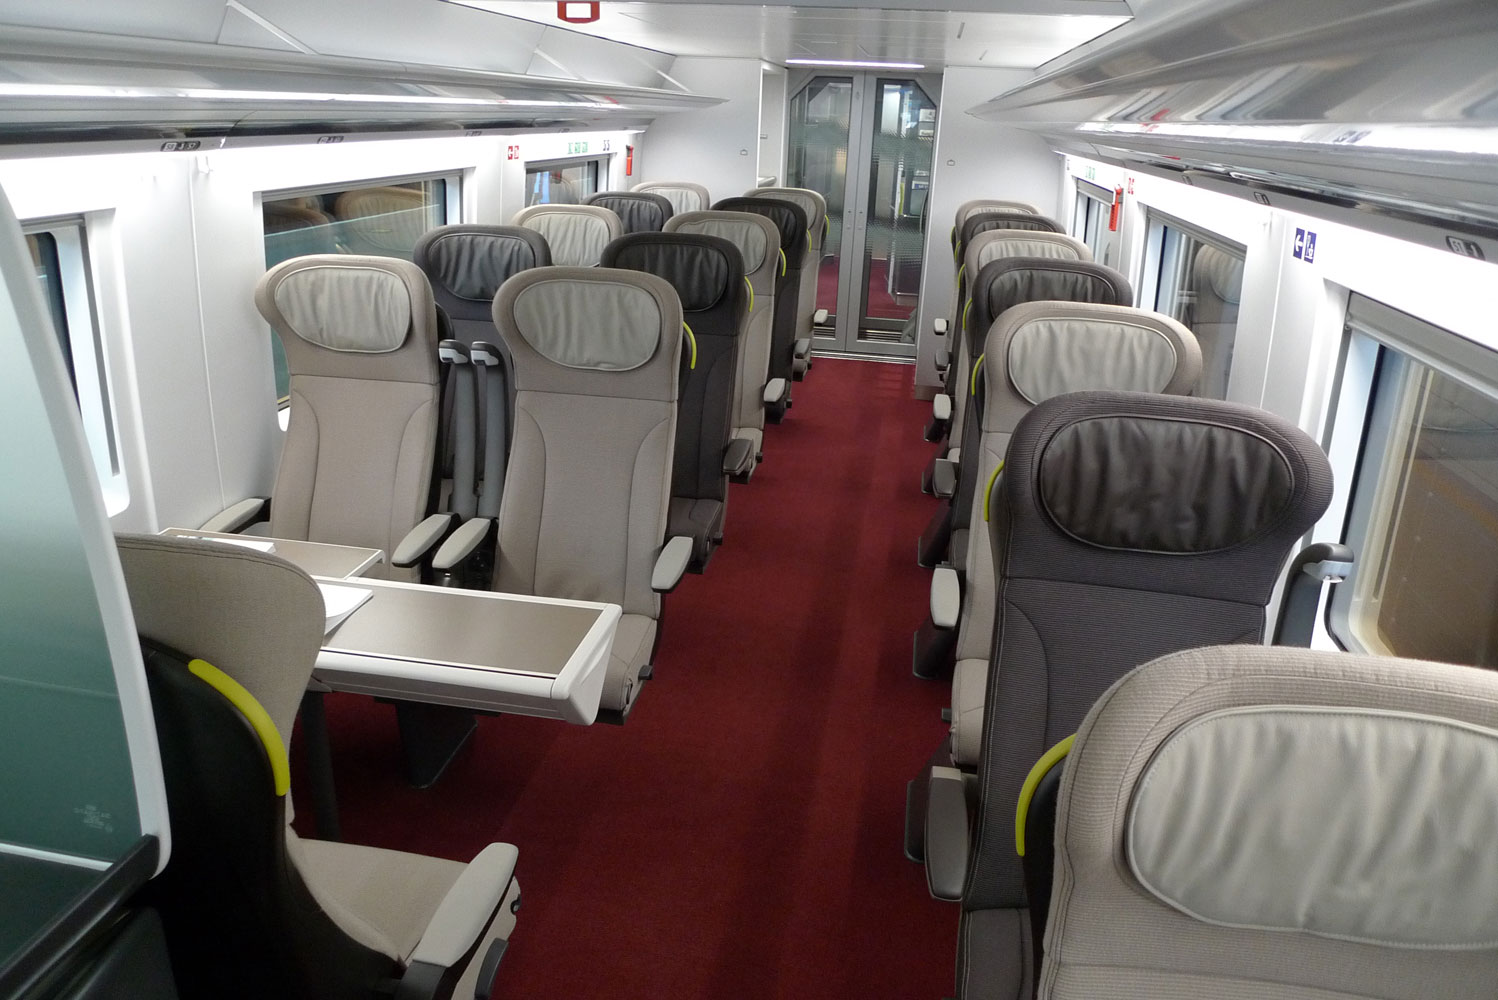 EUROSTAR TRAINS EXPLAINED | London to Paris from £78 rtn